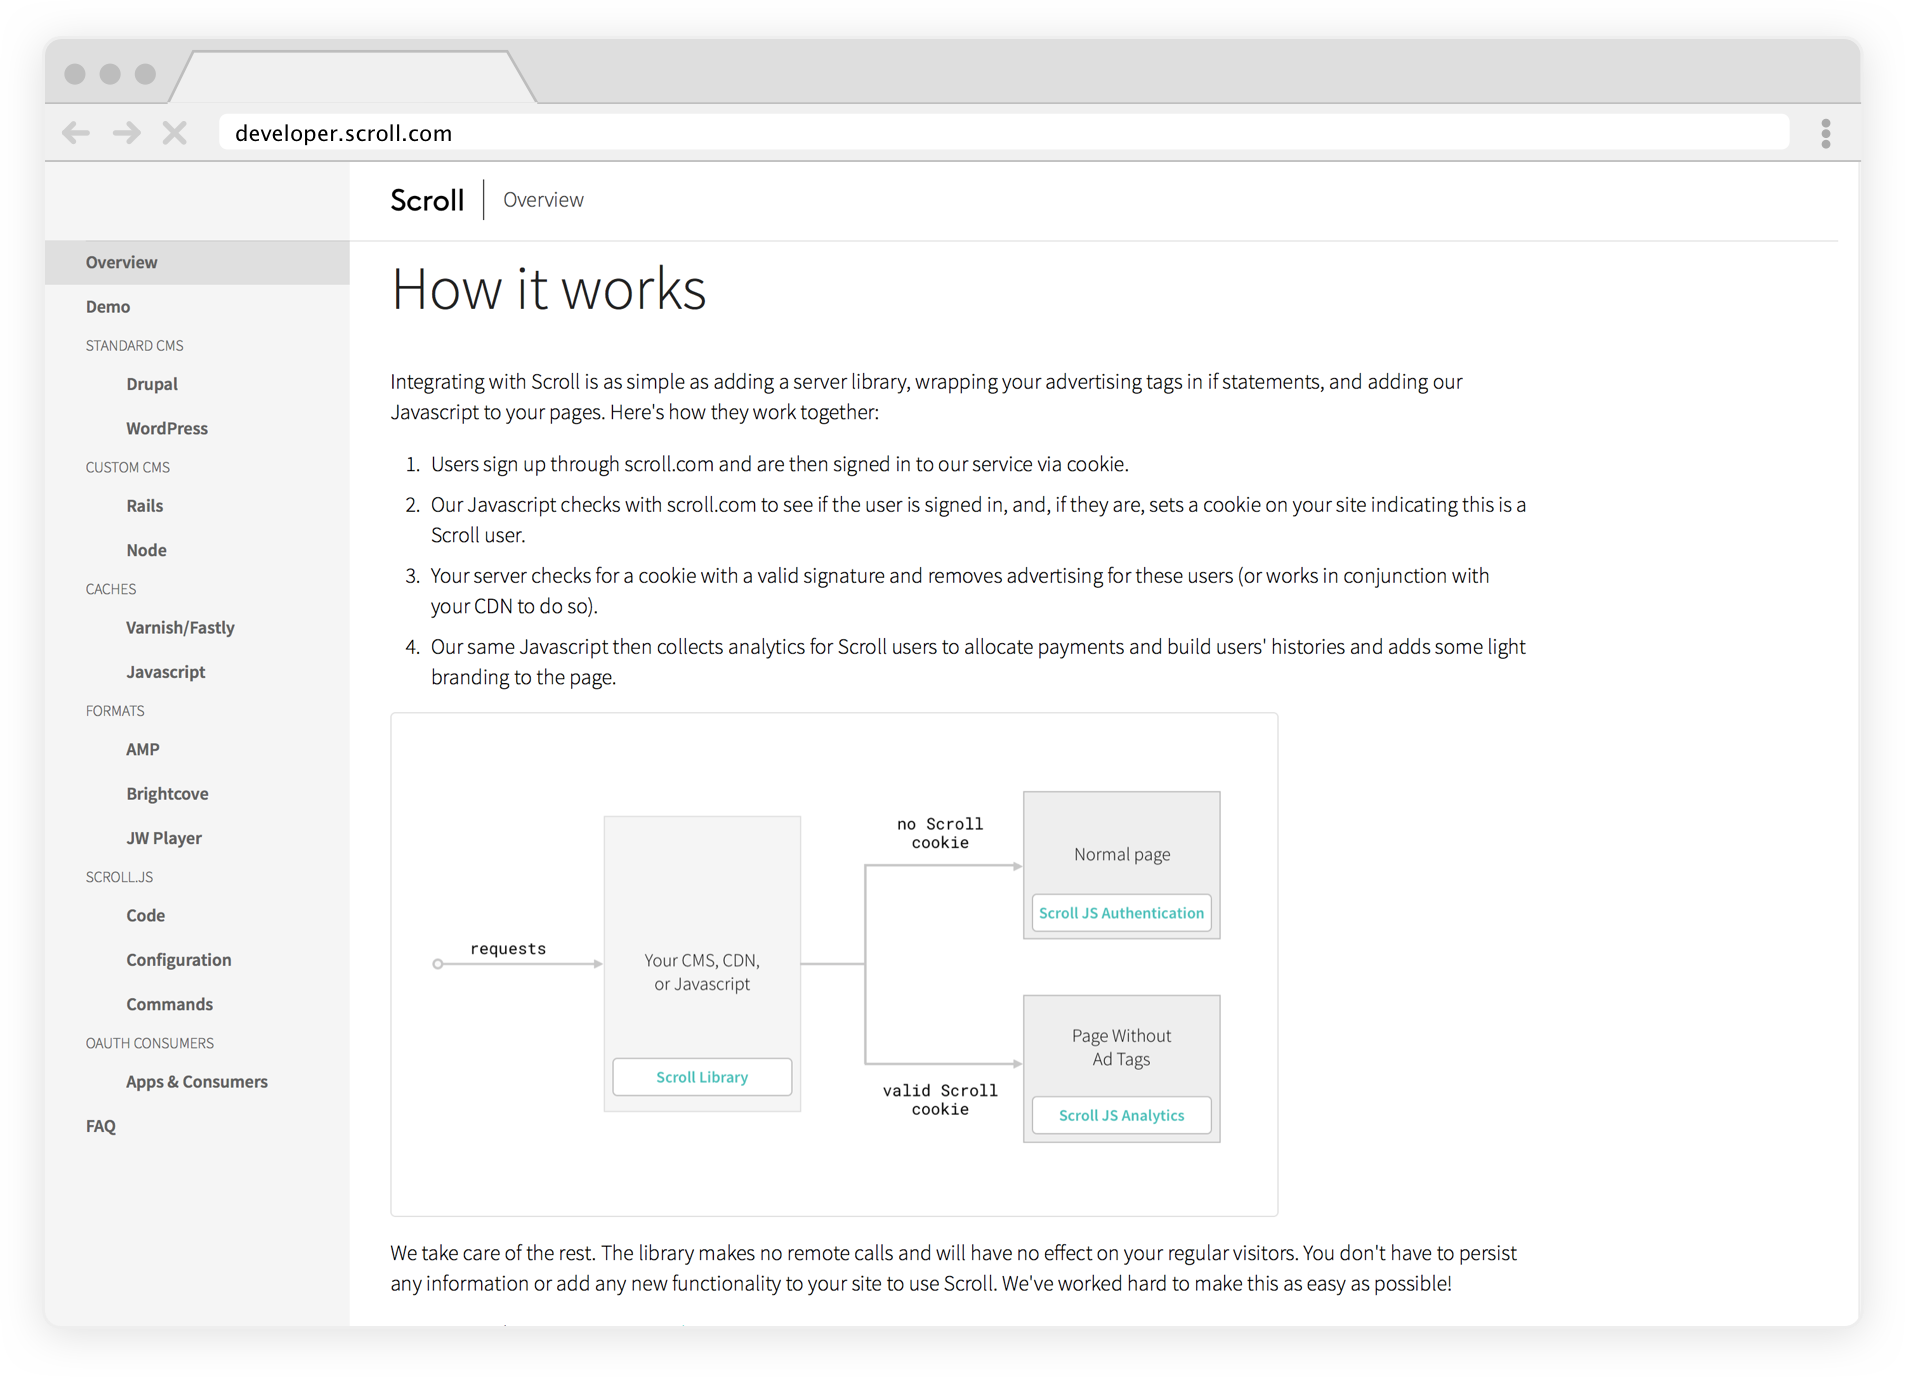 A sample of Scroll's developer resources, providing information about how Scroll works and how to set it up, which you can visit at the above link